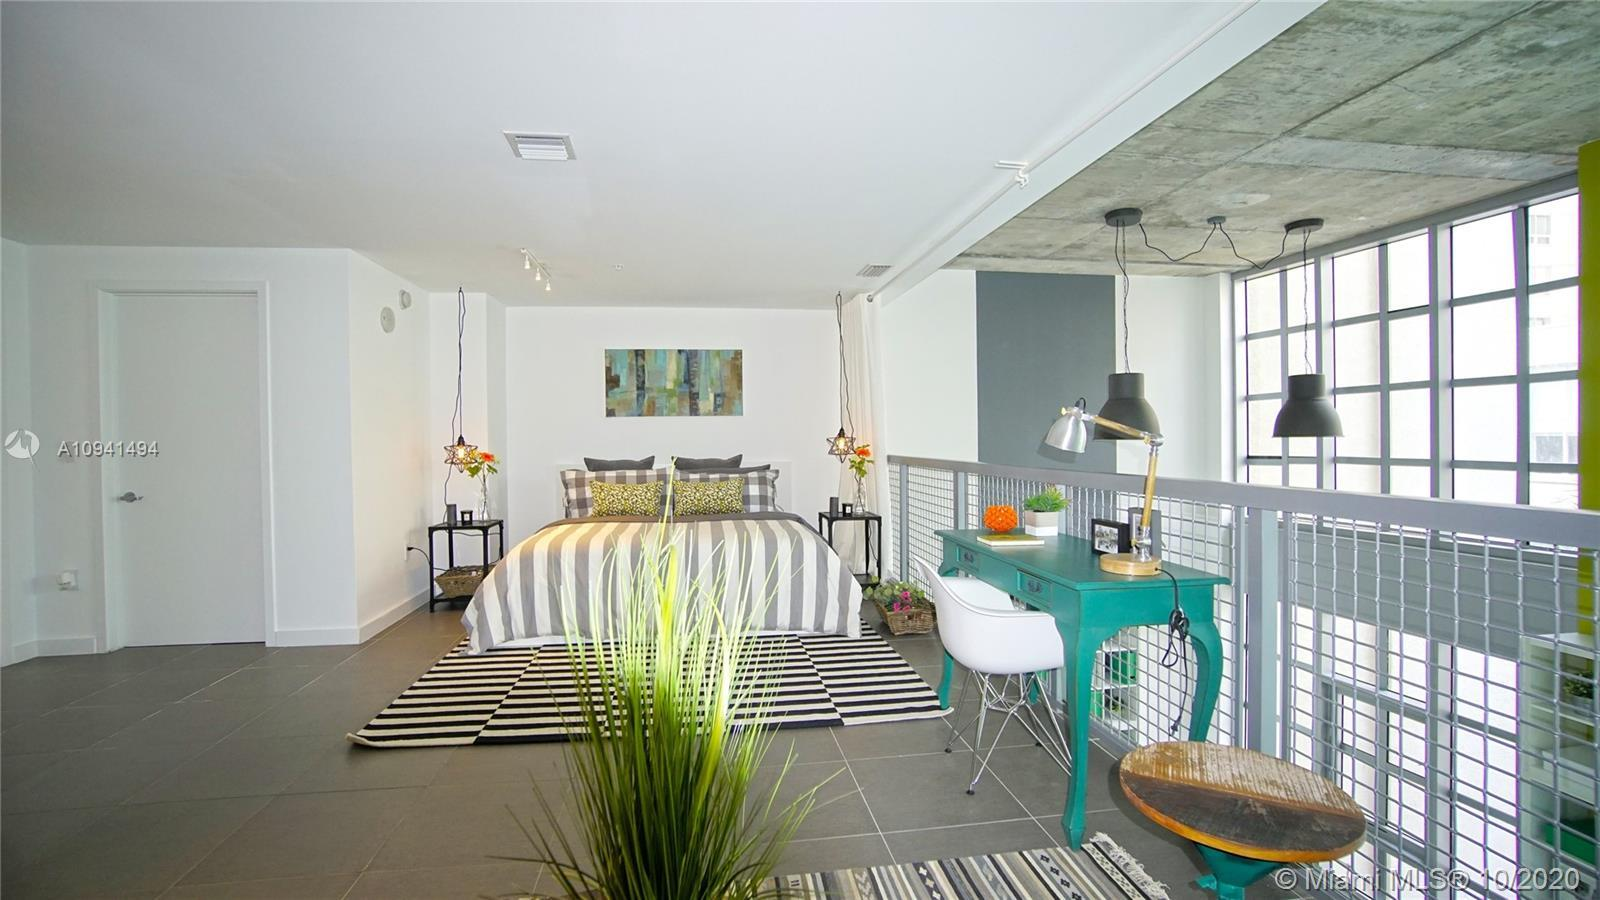 Unique 2- Story - Live/work Loft style- This property can be converted into three (3) bedrooms with